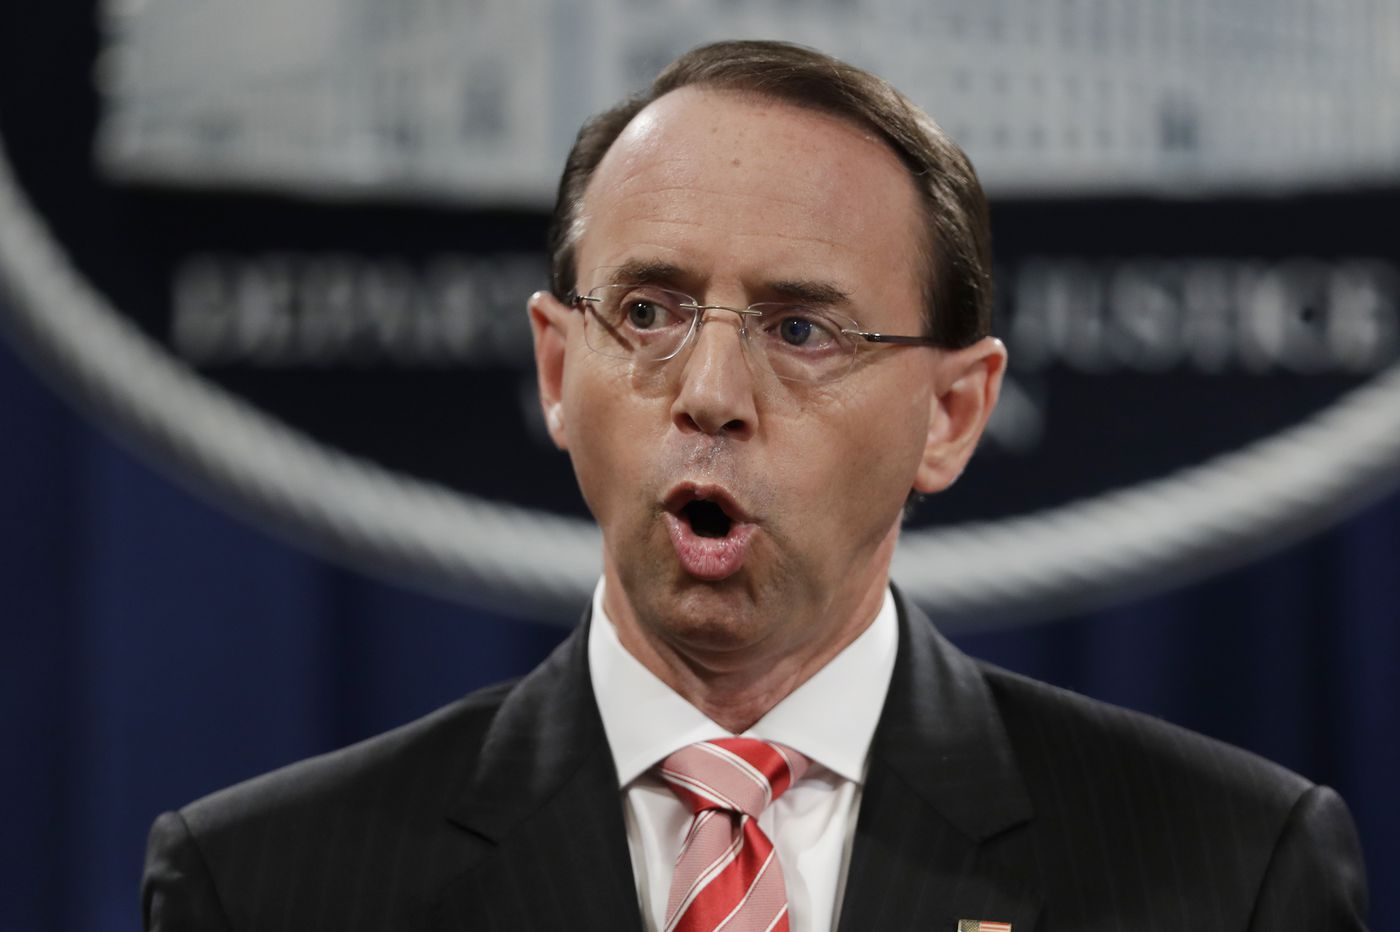 Rosenstein, a frequent Trump target, will leave Justice Dept